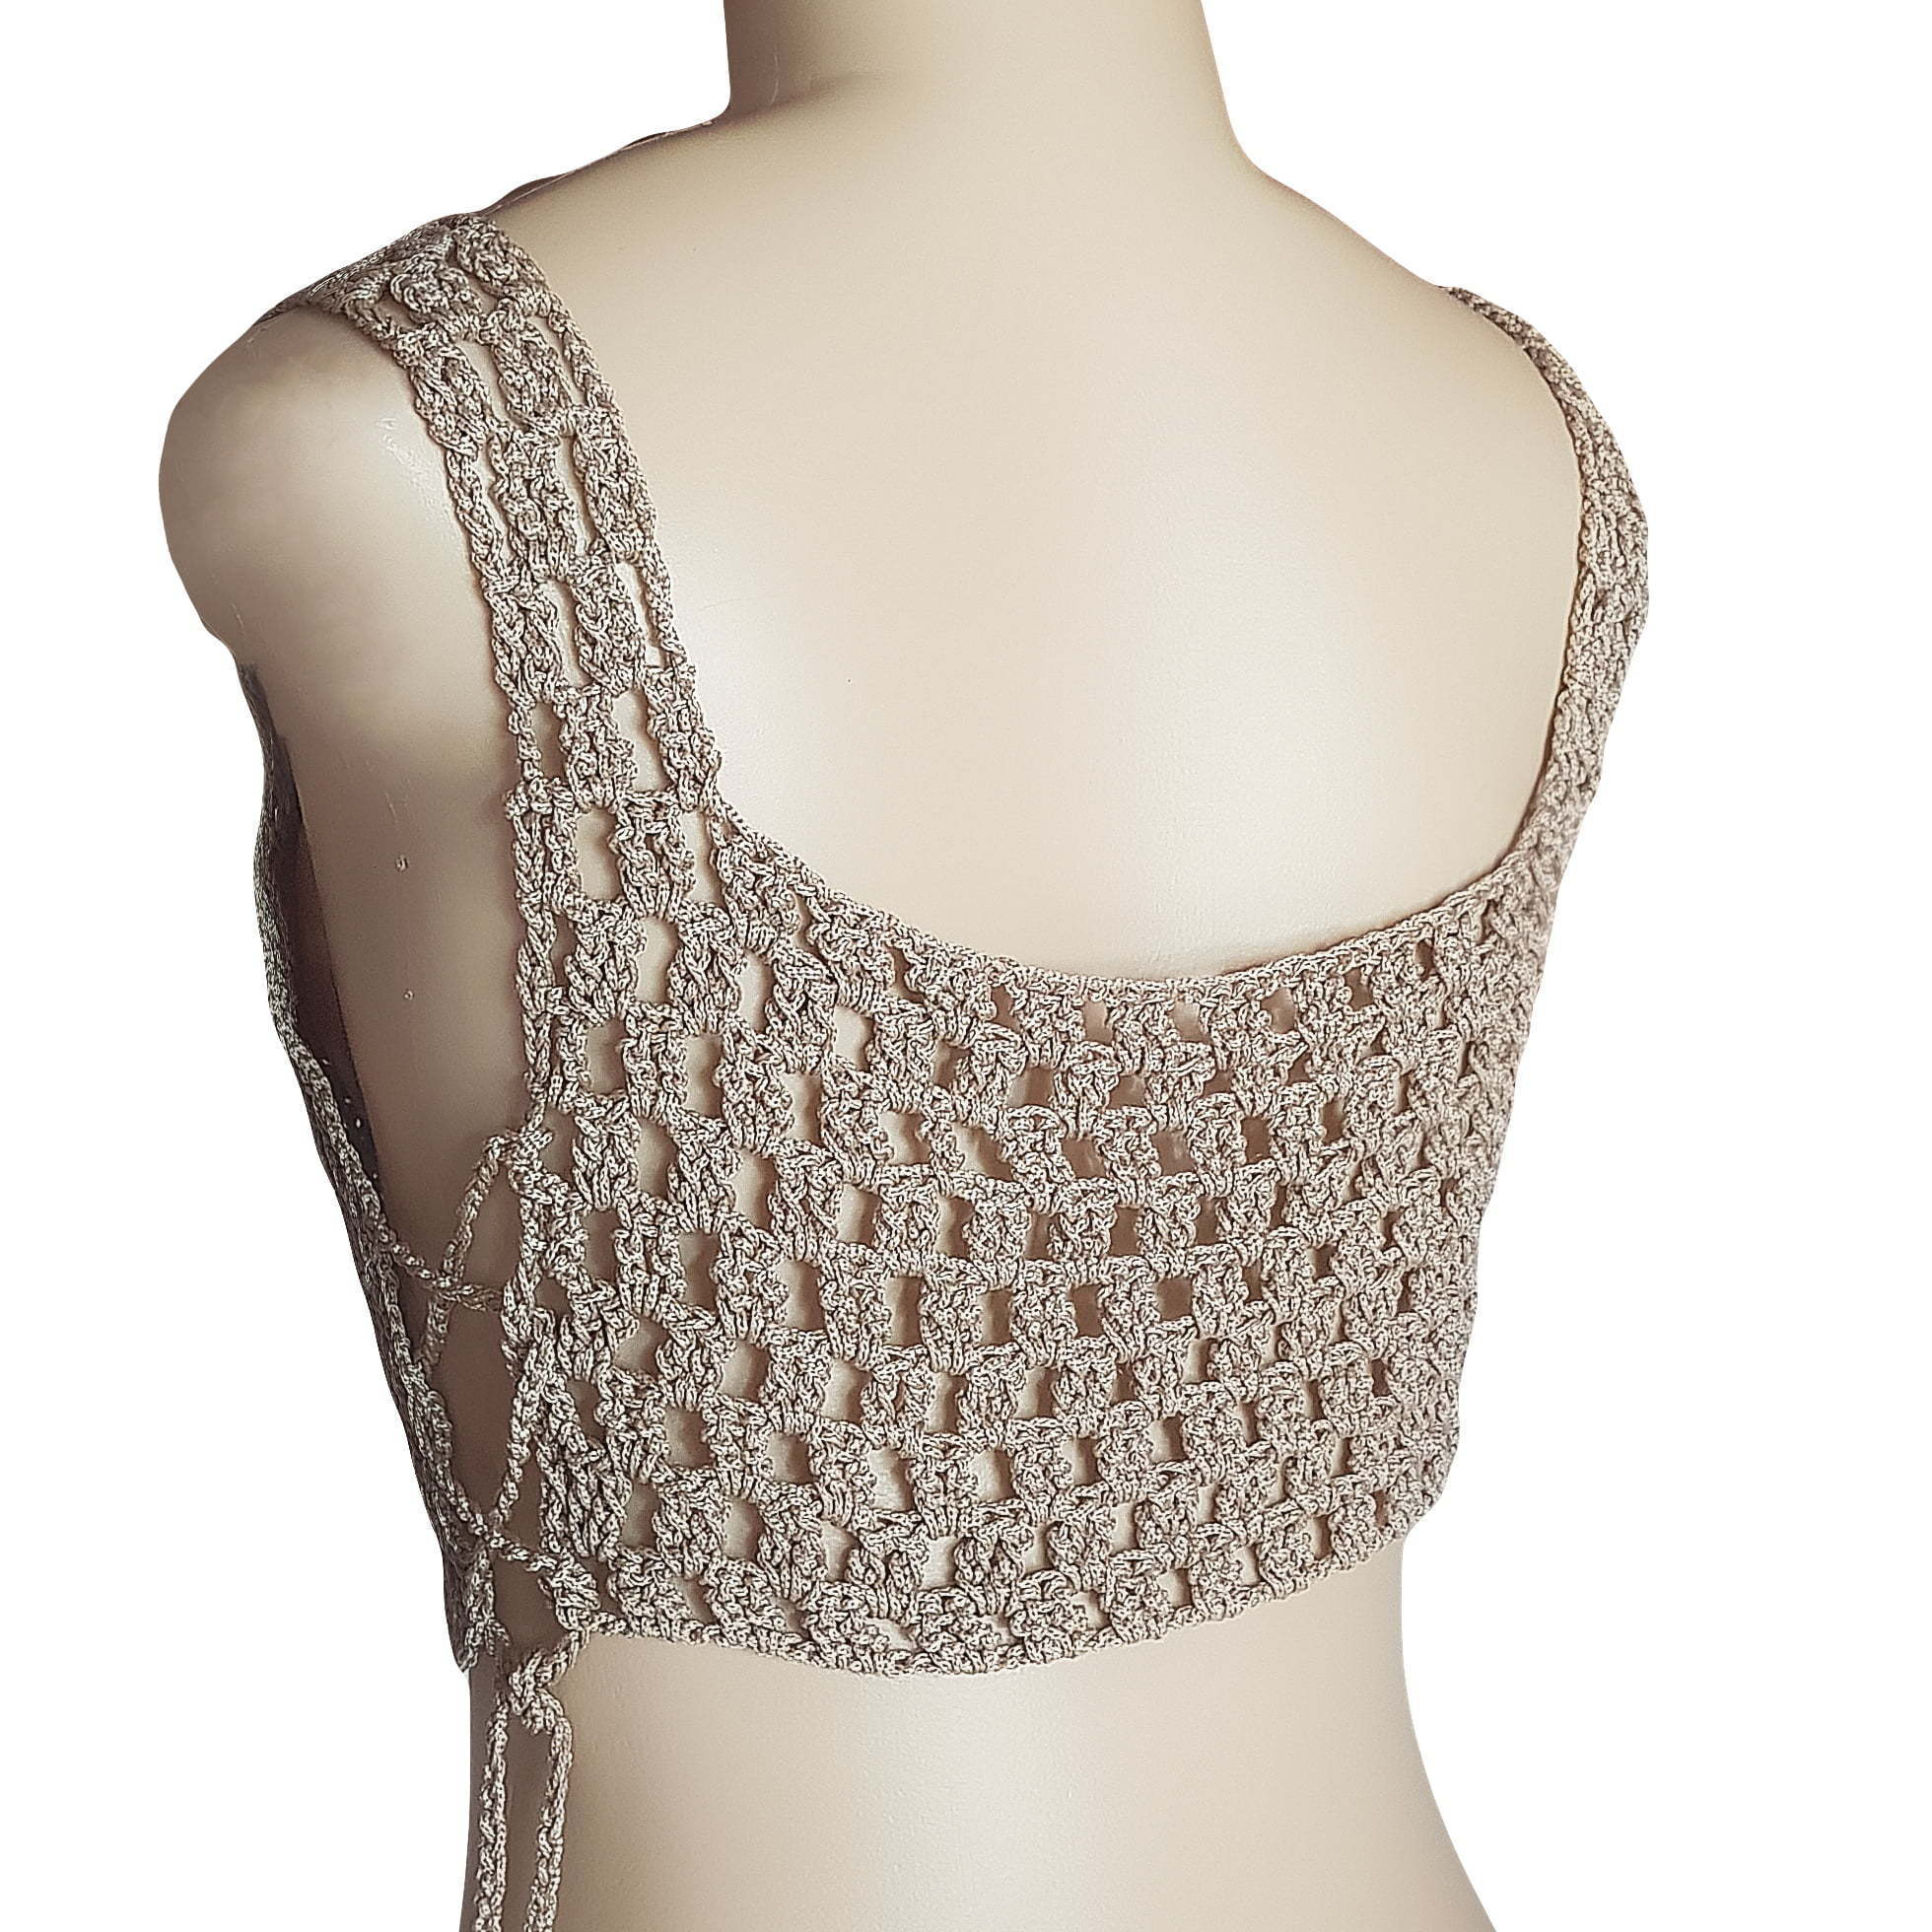 Nude crochet sexy handmade crop top 6 this crochet top was created with comfort and uniqueness in mind. Handmade top created to be a unique one of a kind clothing item. It is perfect for several sizes as you can tie-up the sides looser or tighter for a perfect and comfortable fit. A great crochet top with a modern color. Great as a casual top or with smart pants or a skirt, accessories and shoes for a more smart casual occasion.